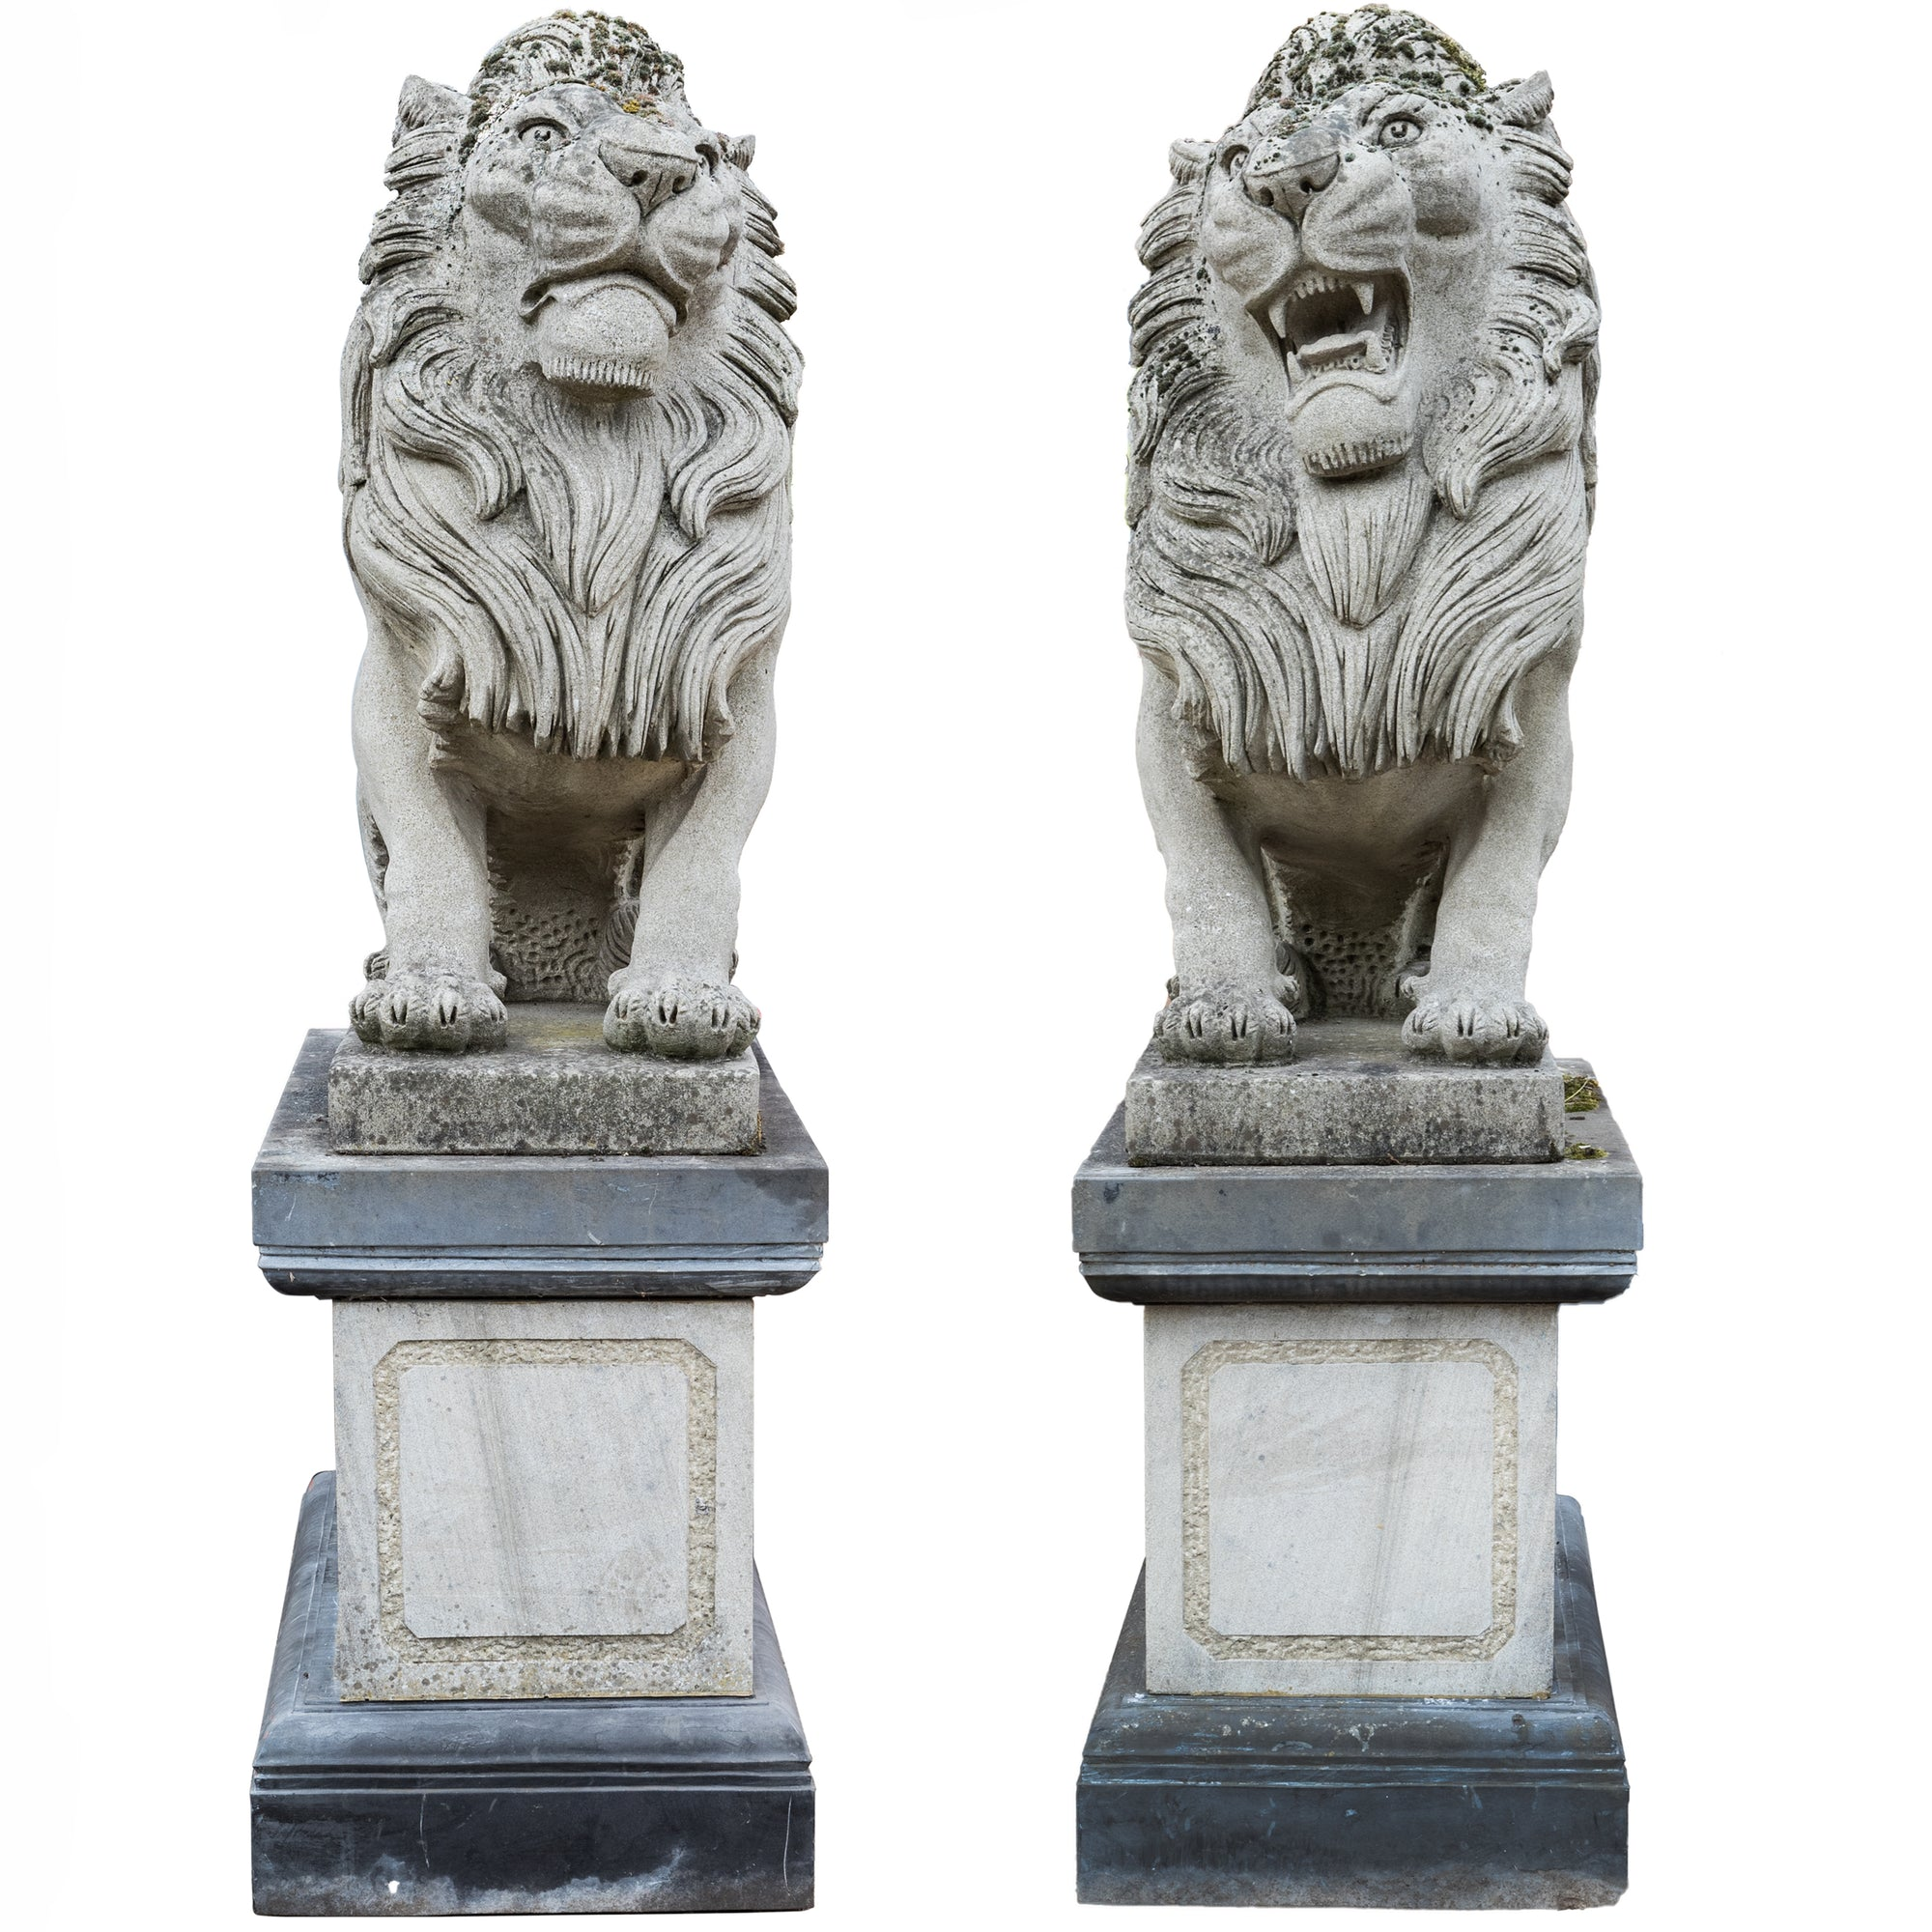 Reclaimed Pair of Monumental Stone Lions on their own Plinth